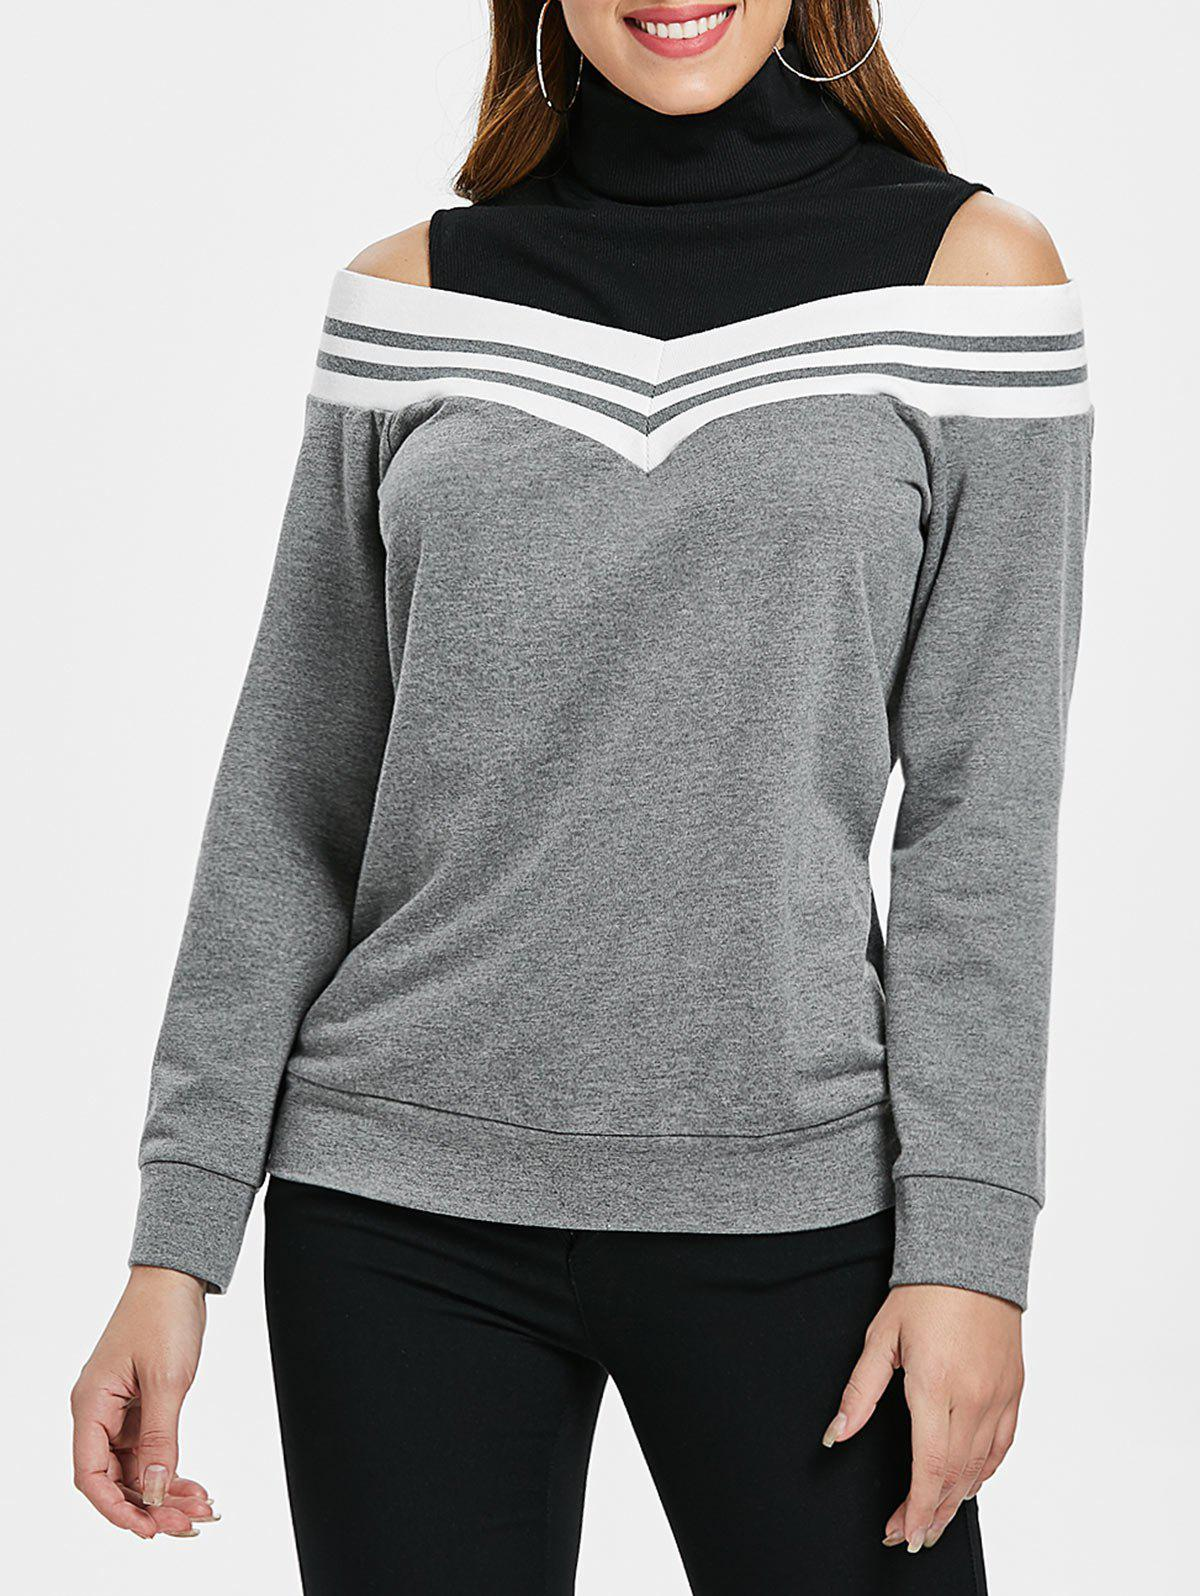 Elastic Striped Brim Shoulder Cut Panel Sweatshirt - GRAY GOOSE L